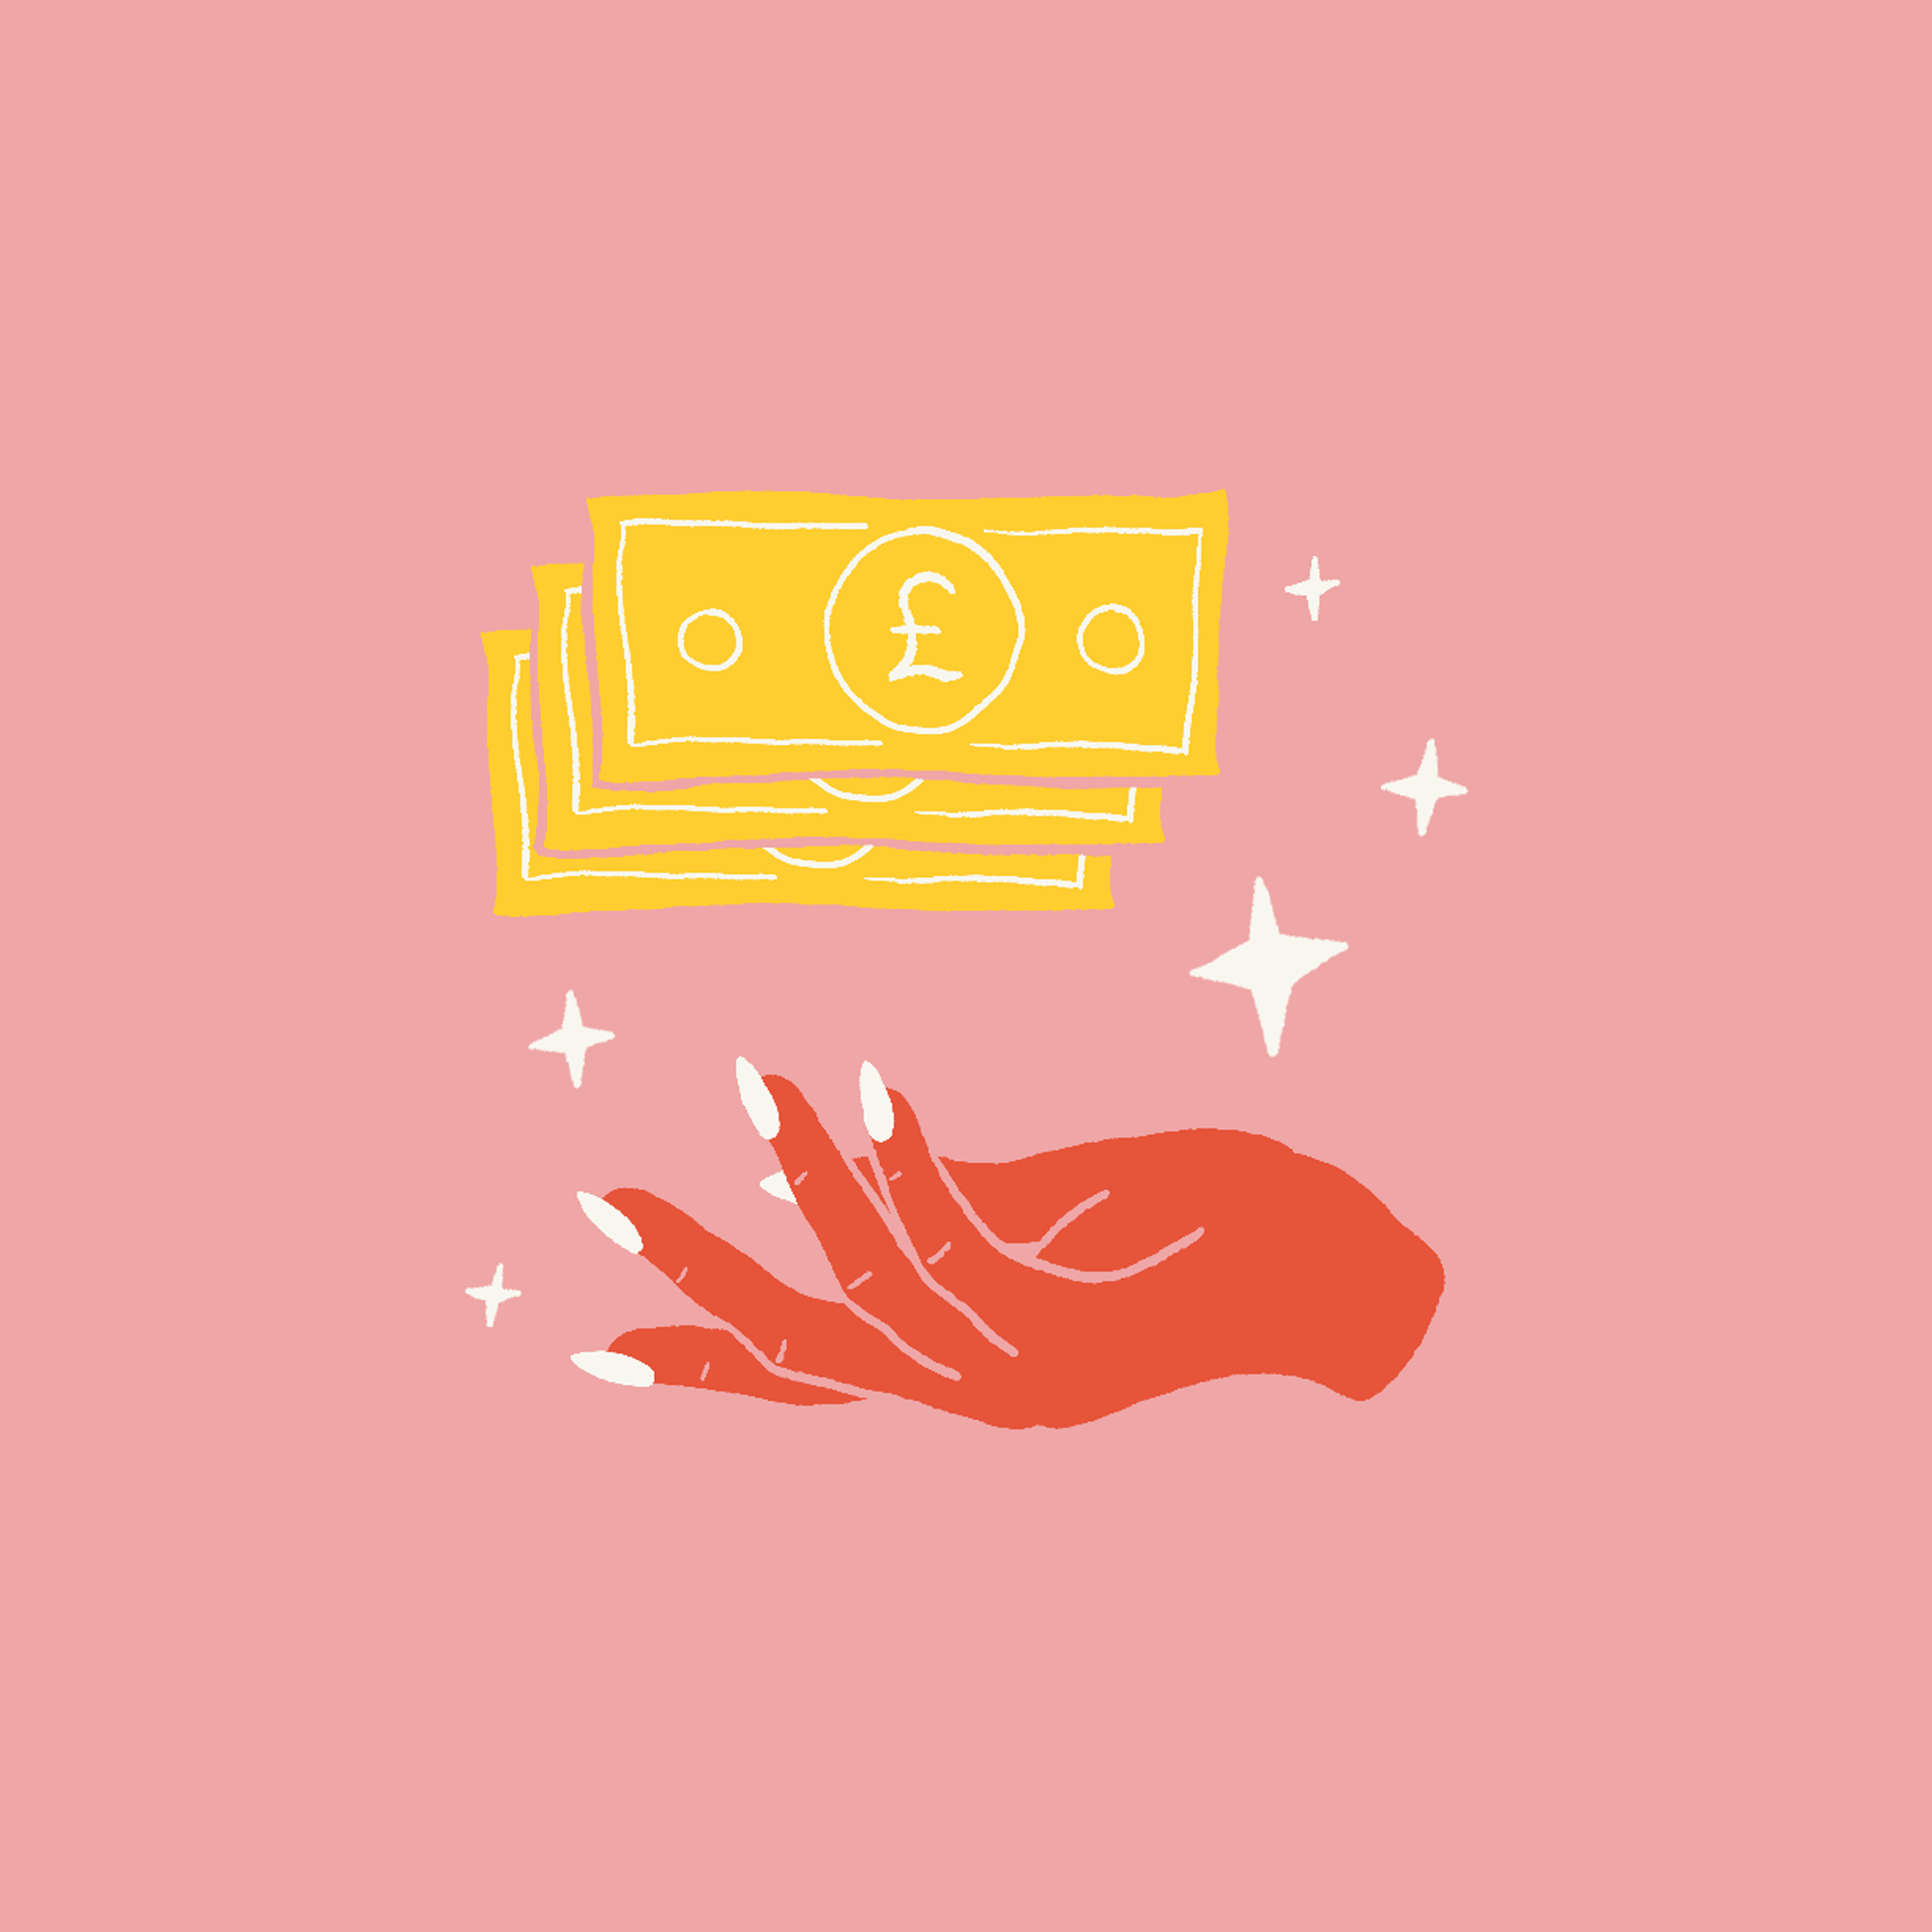 13 Women Share Their Financial Resolutions For 2019